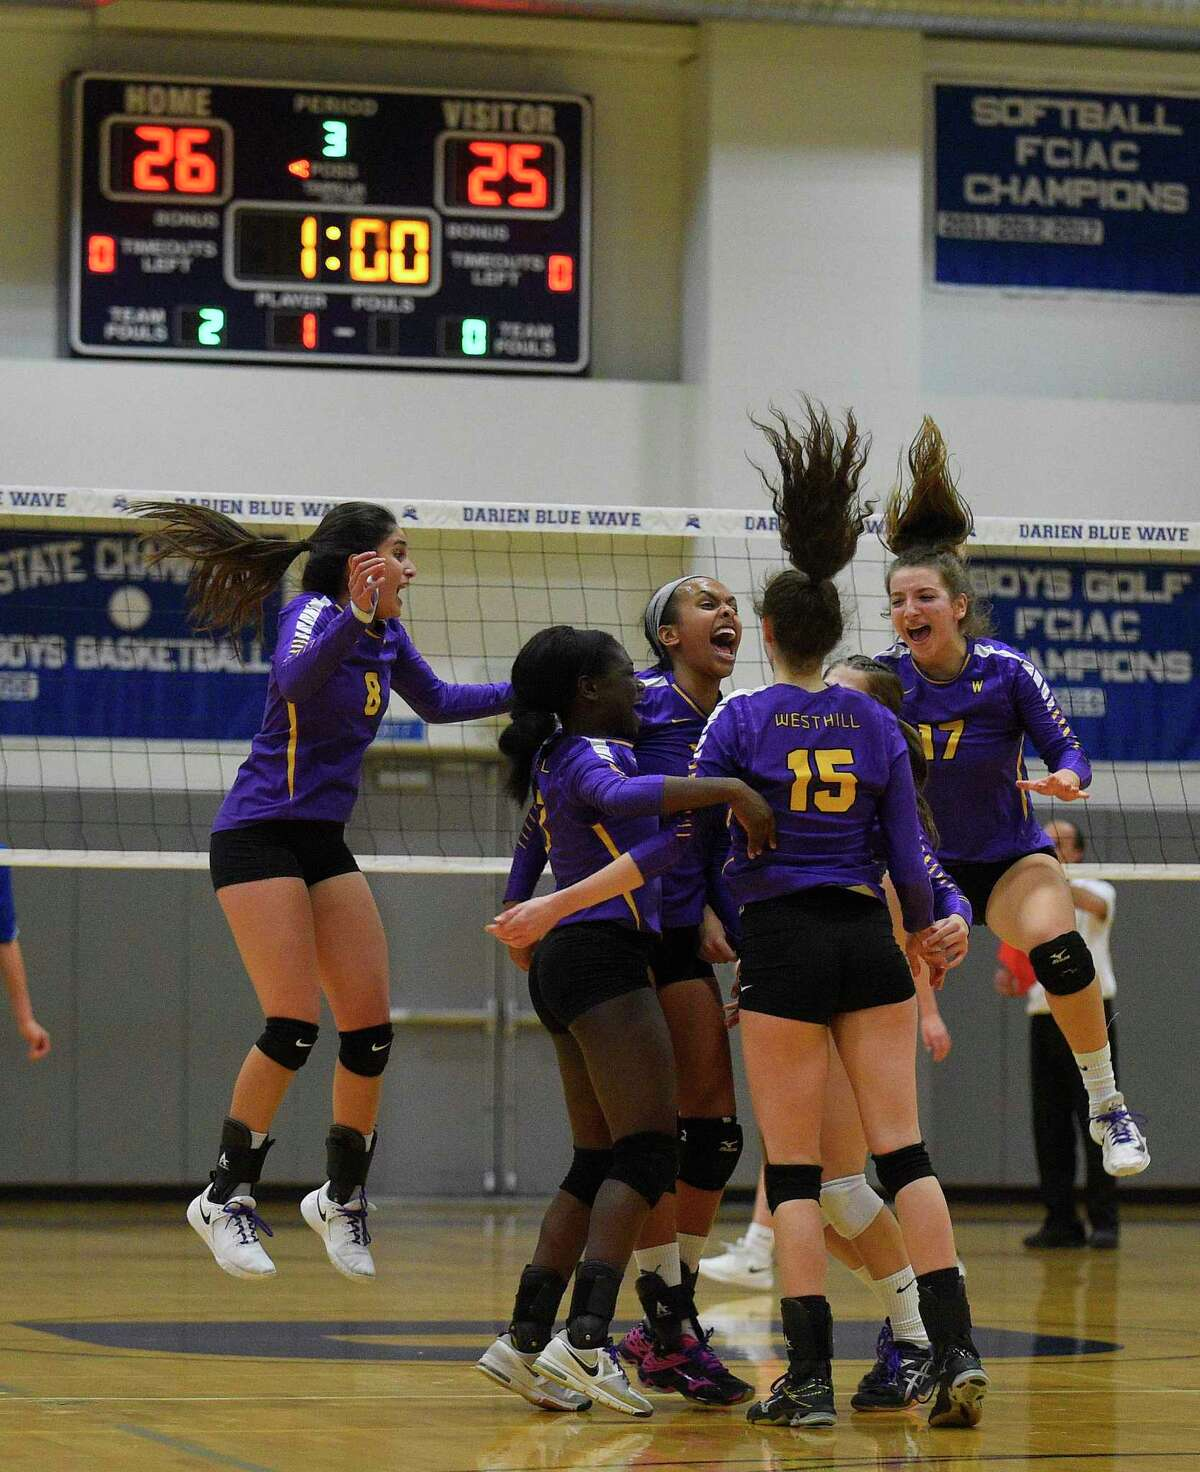 Westhill celebrates after defeating Fairfield Ludlowe 3-0 in the CIAC Class LL girls volleyball semifinal in Darien, Connecticut, Nov. 20, 2019.